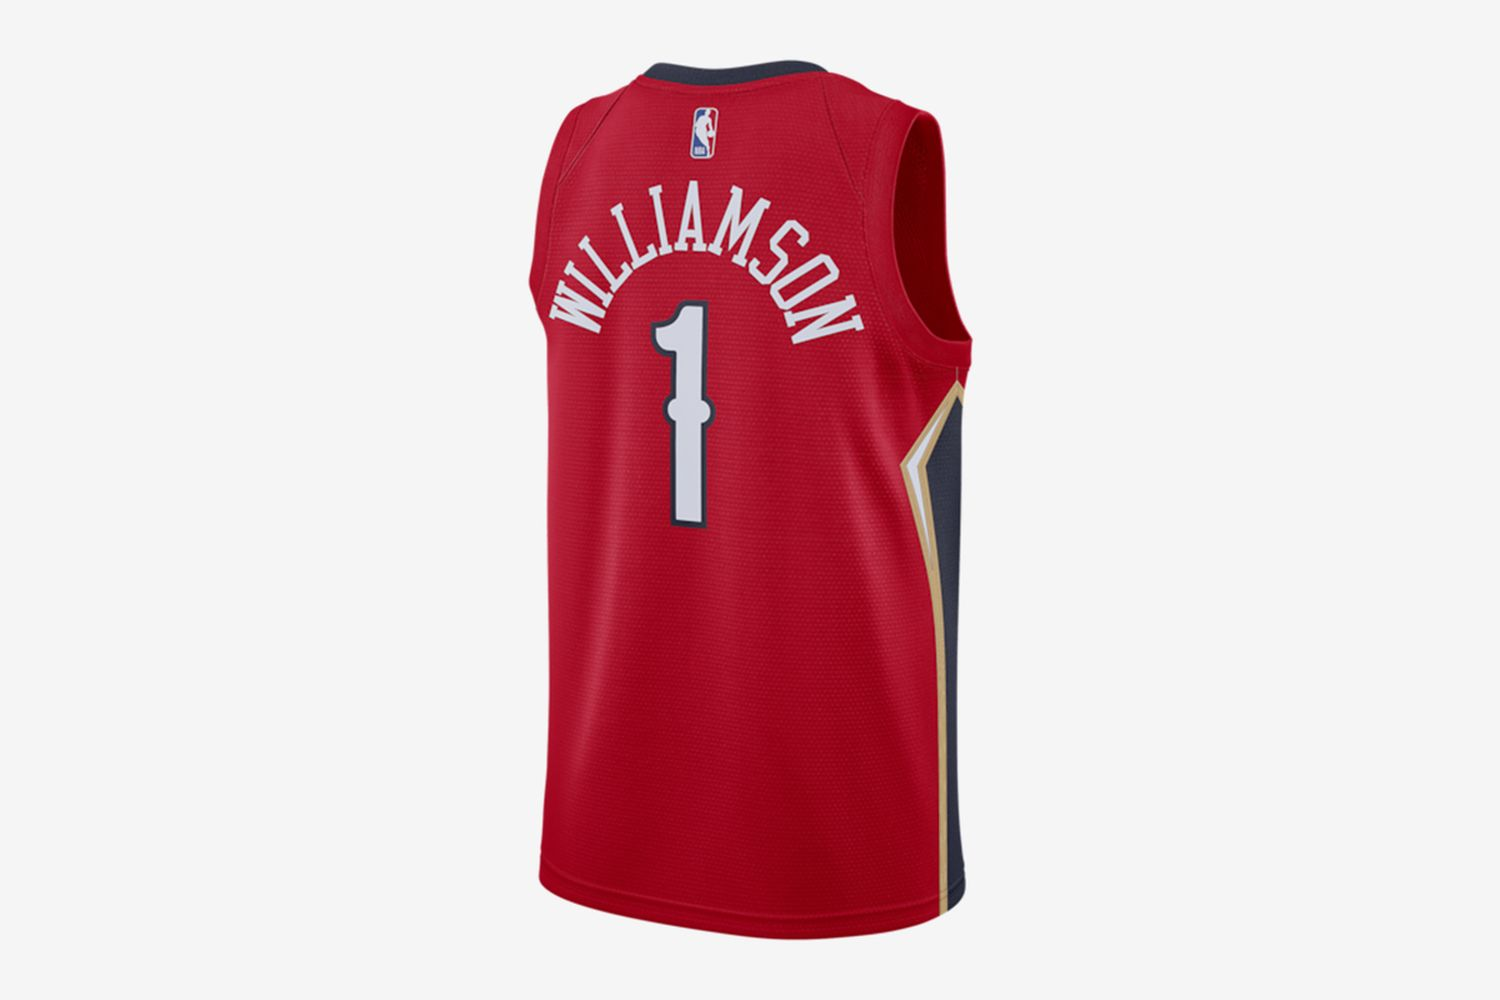 NBA Swingman Jersey